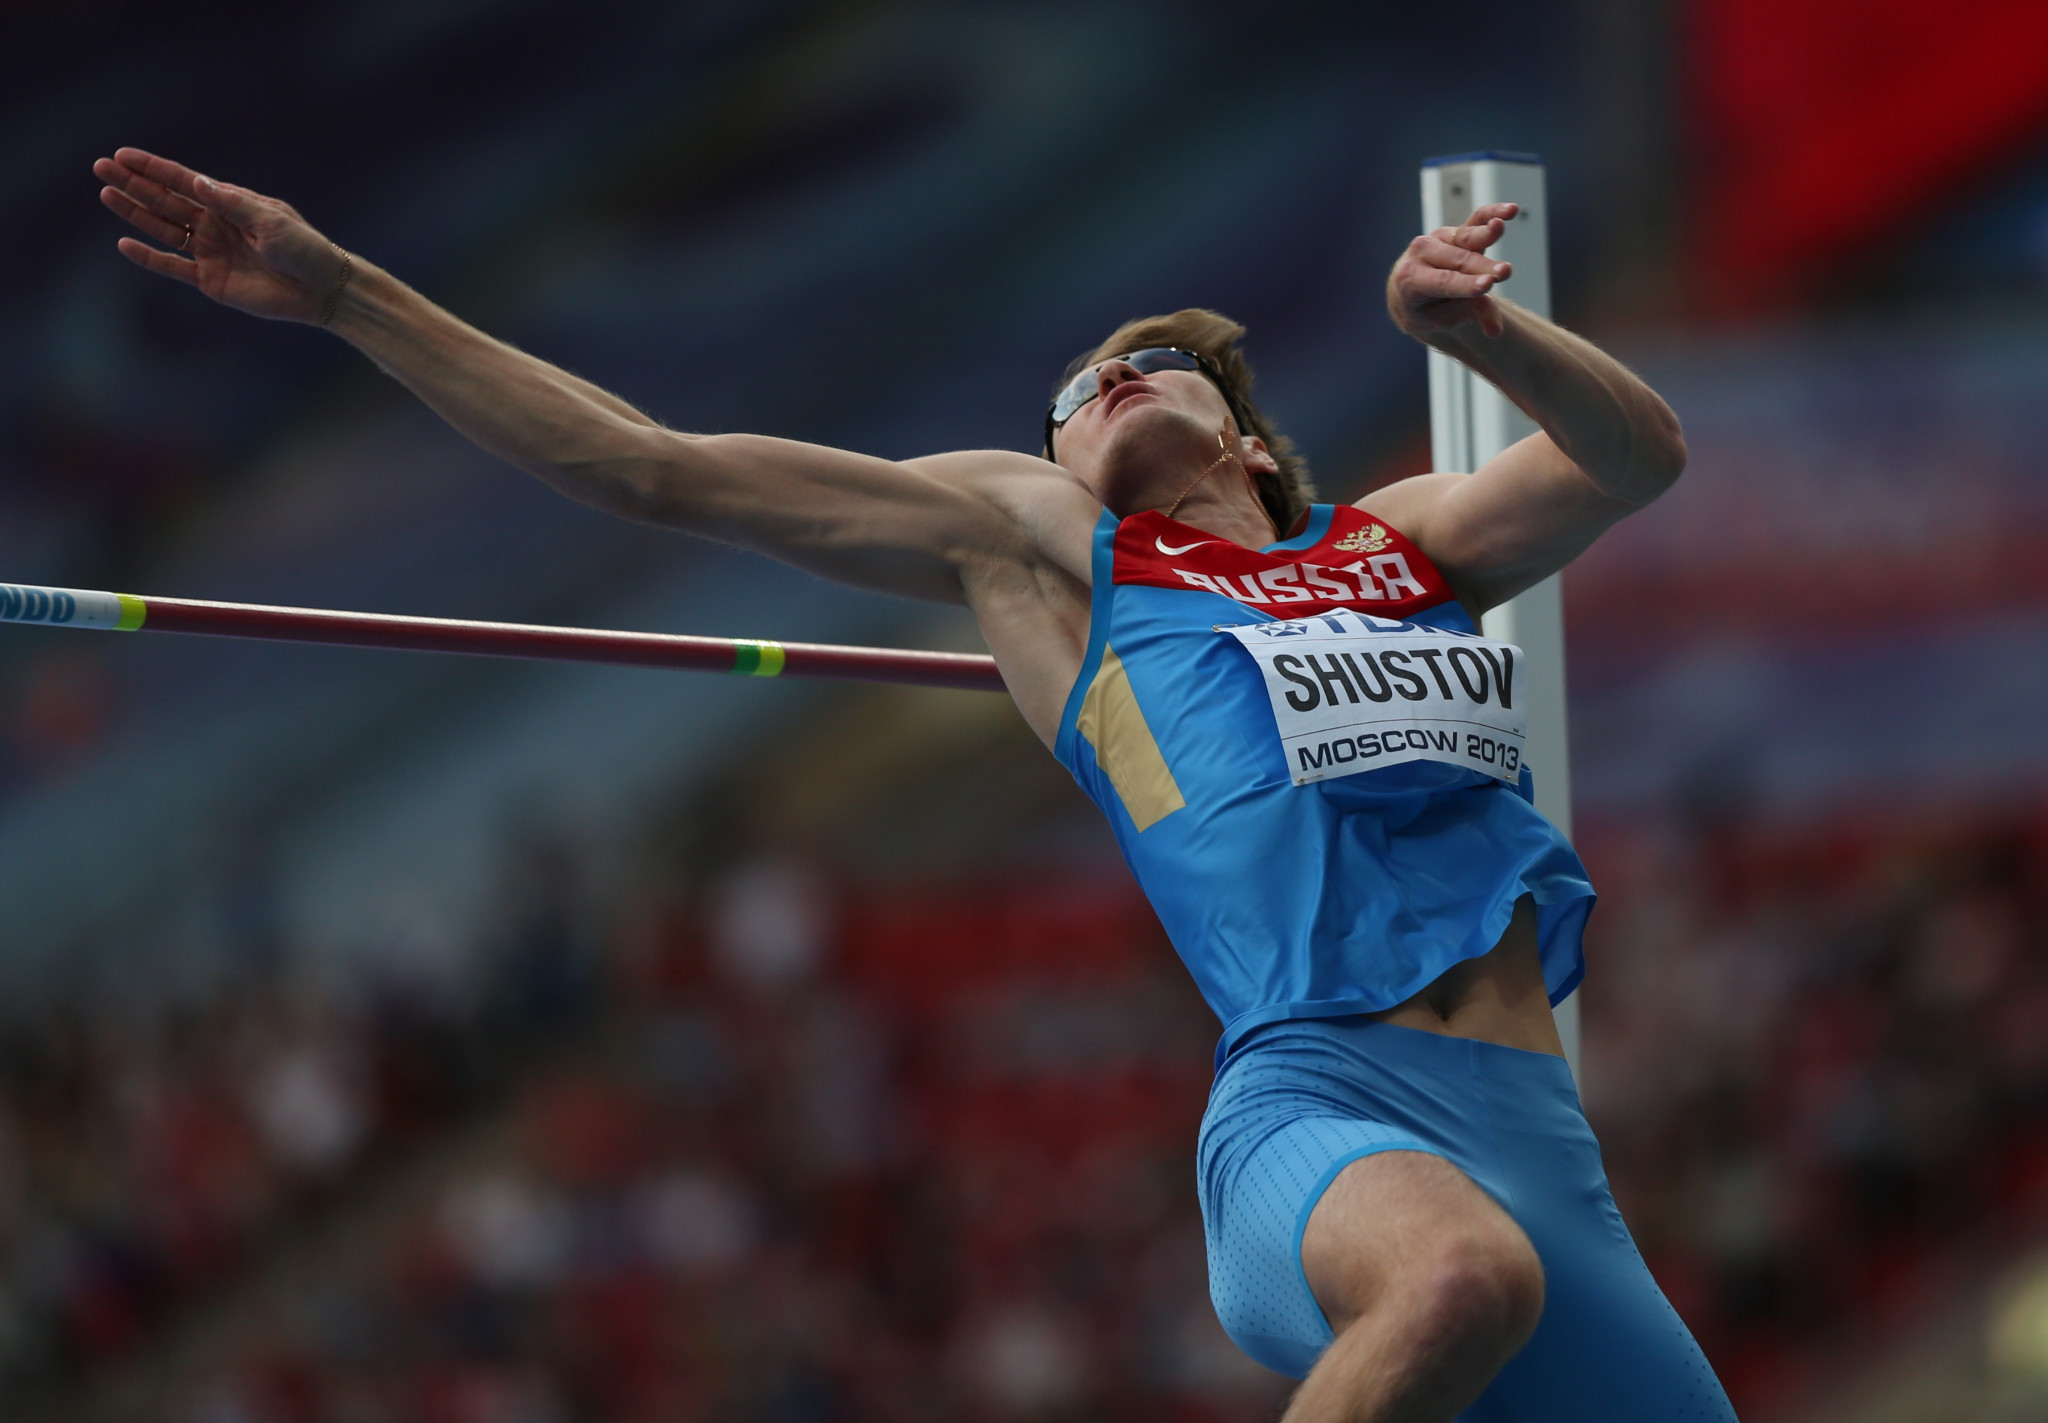 Among the results annulled after the Court of Arbitration for Sport upheld Alexander Shustov's four-year doping ban was his seventh place finish at the 2013 World Championships in Moscow ©Getty Images